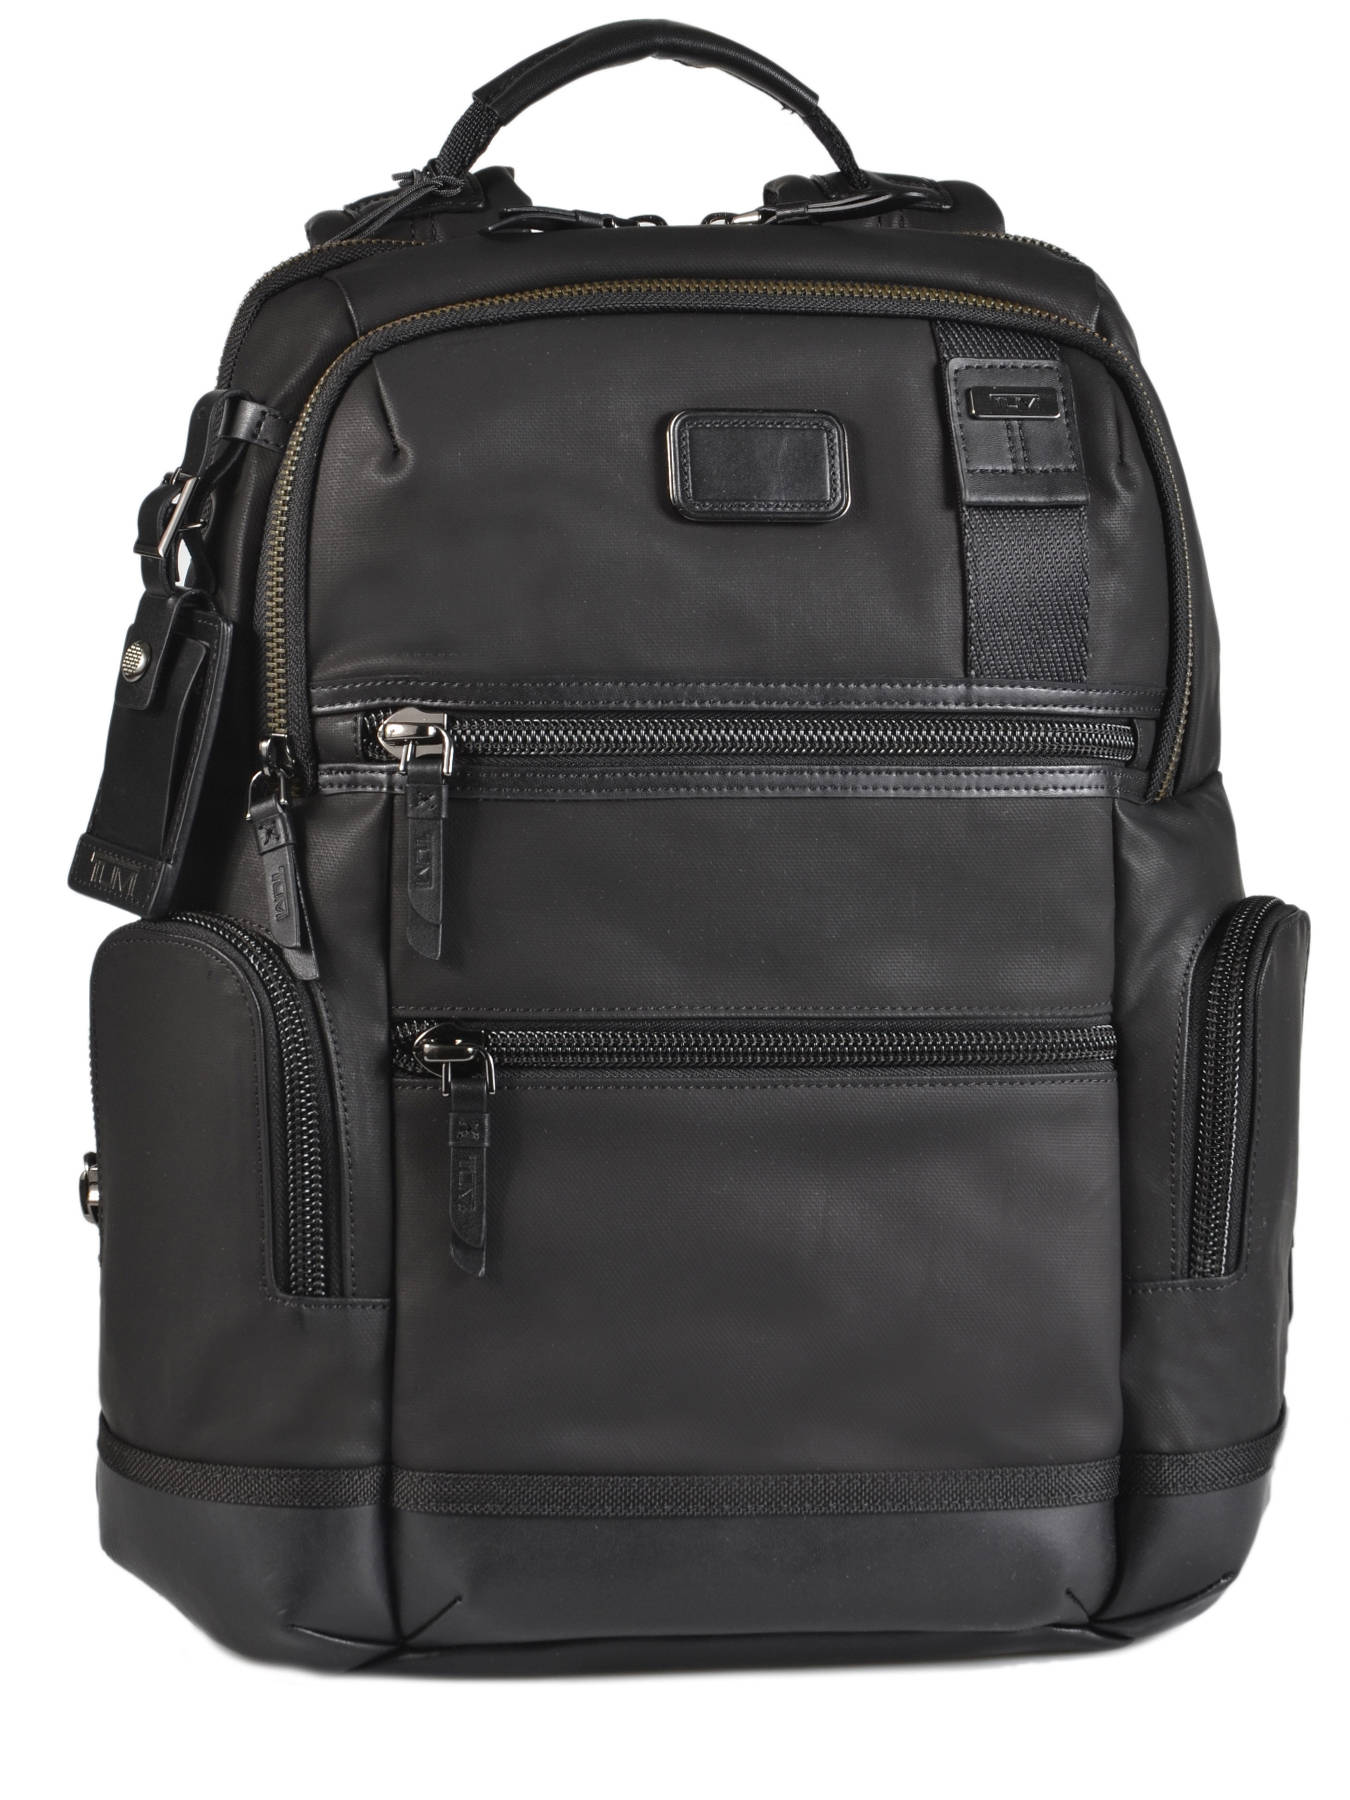 Elegant Tumi Alpha Bravo for Cool Travel Bag Ideas: Tumi Backpack Ebay | Tumi Alpha Bravo | Tumi Alpha Bravo Lejeune Backpack